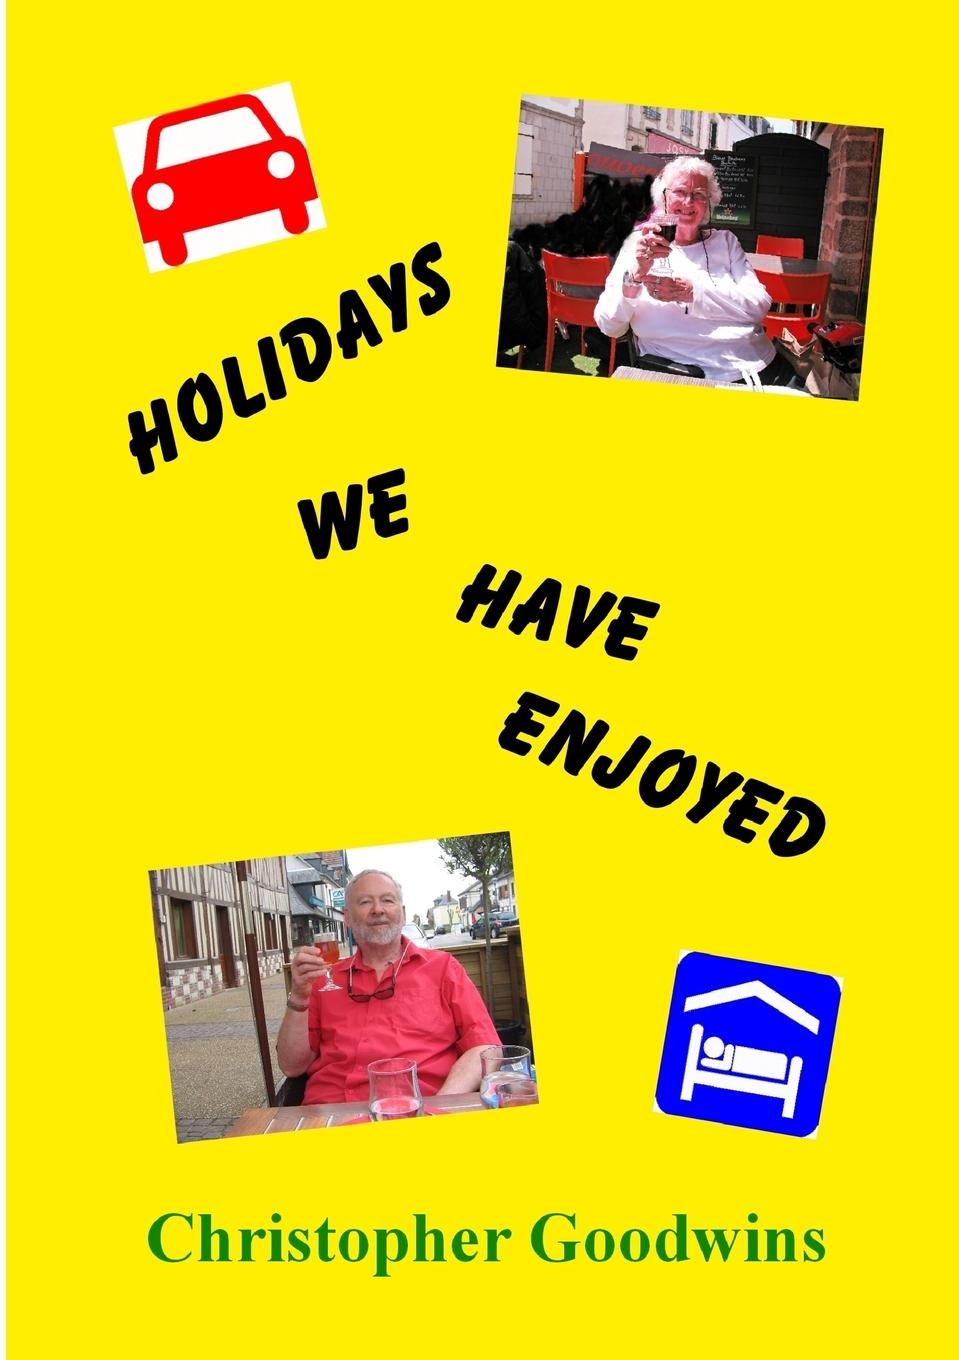 Christopher Goodwins HOLIDAYS WE HAVE ENJOYED